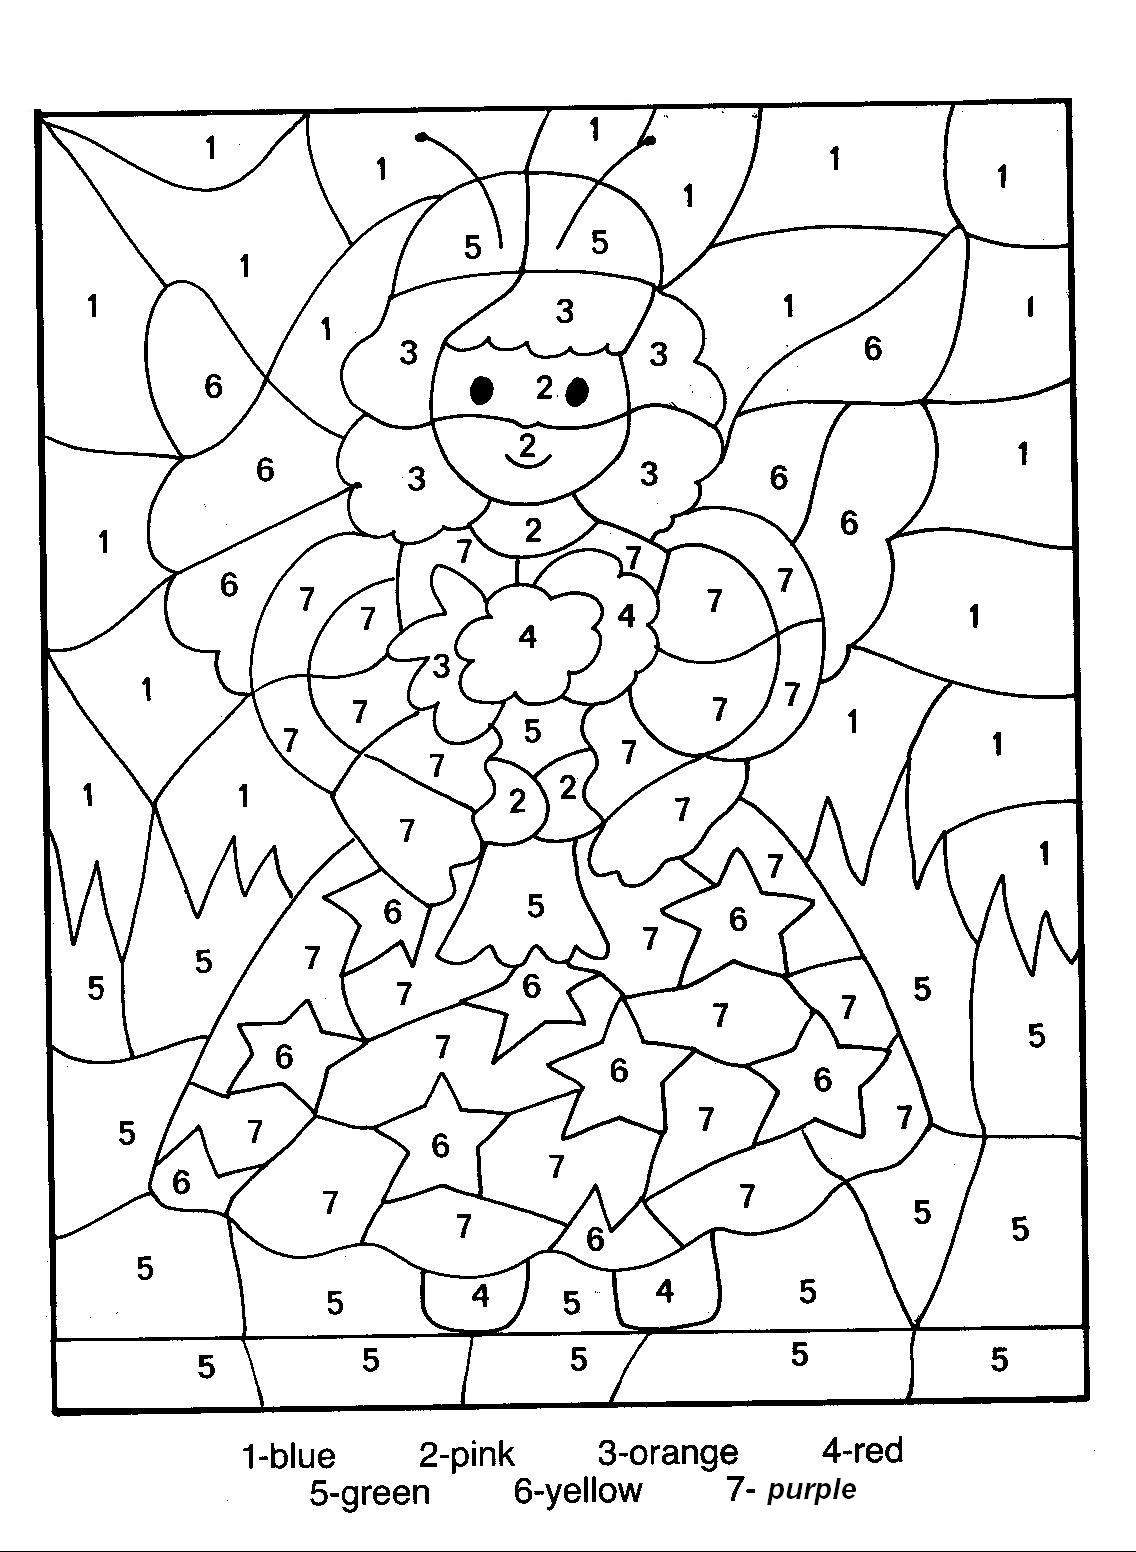 coloring sheets with numbers free printable number coloring pages for kids coloring numbers with sheets